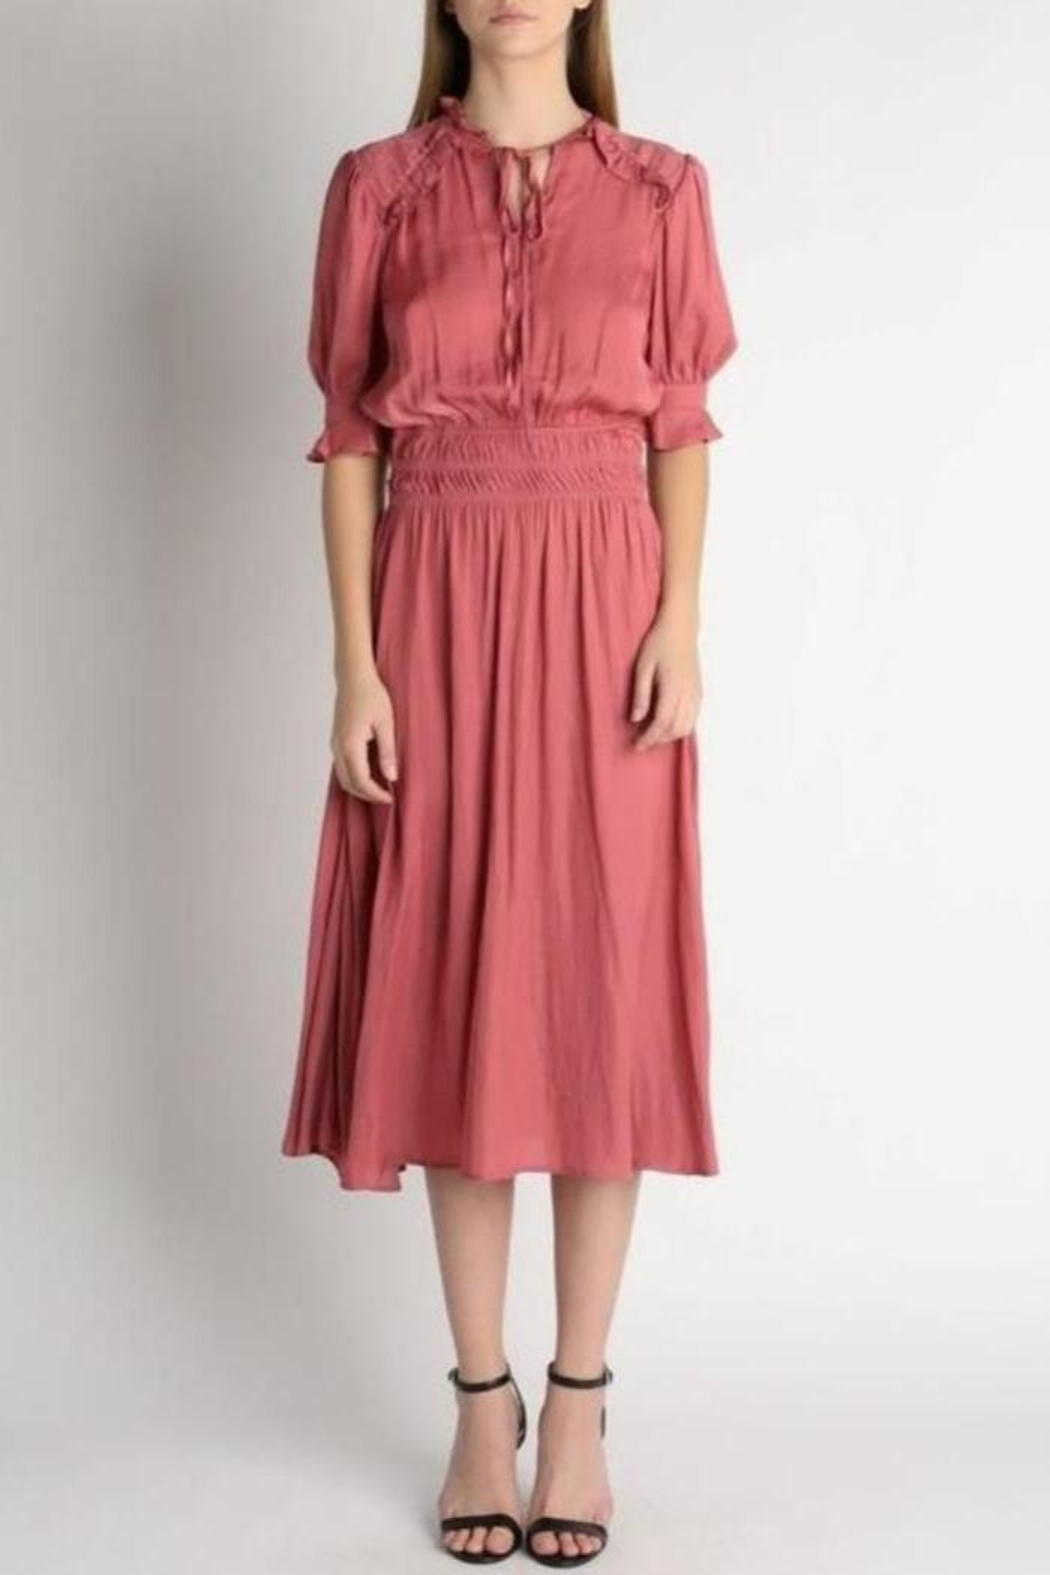 Current Air Rosie Dress - Side Cropped Image